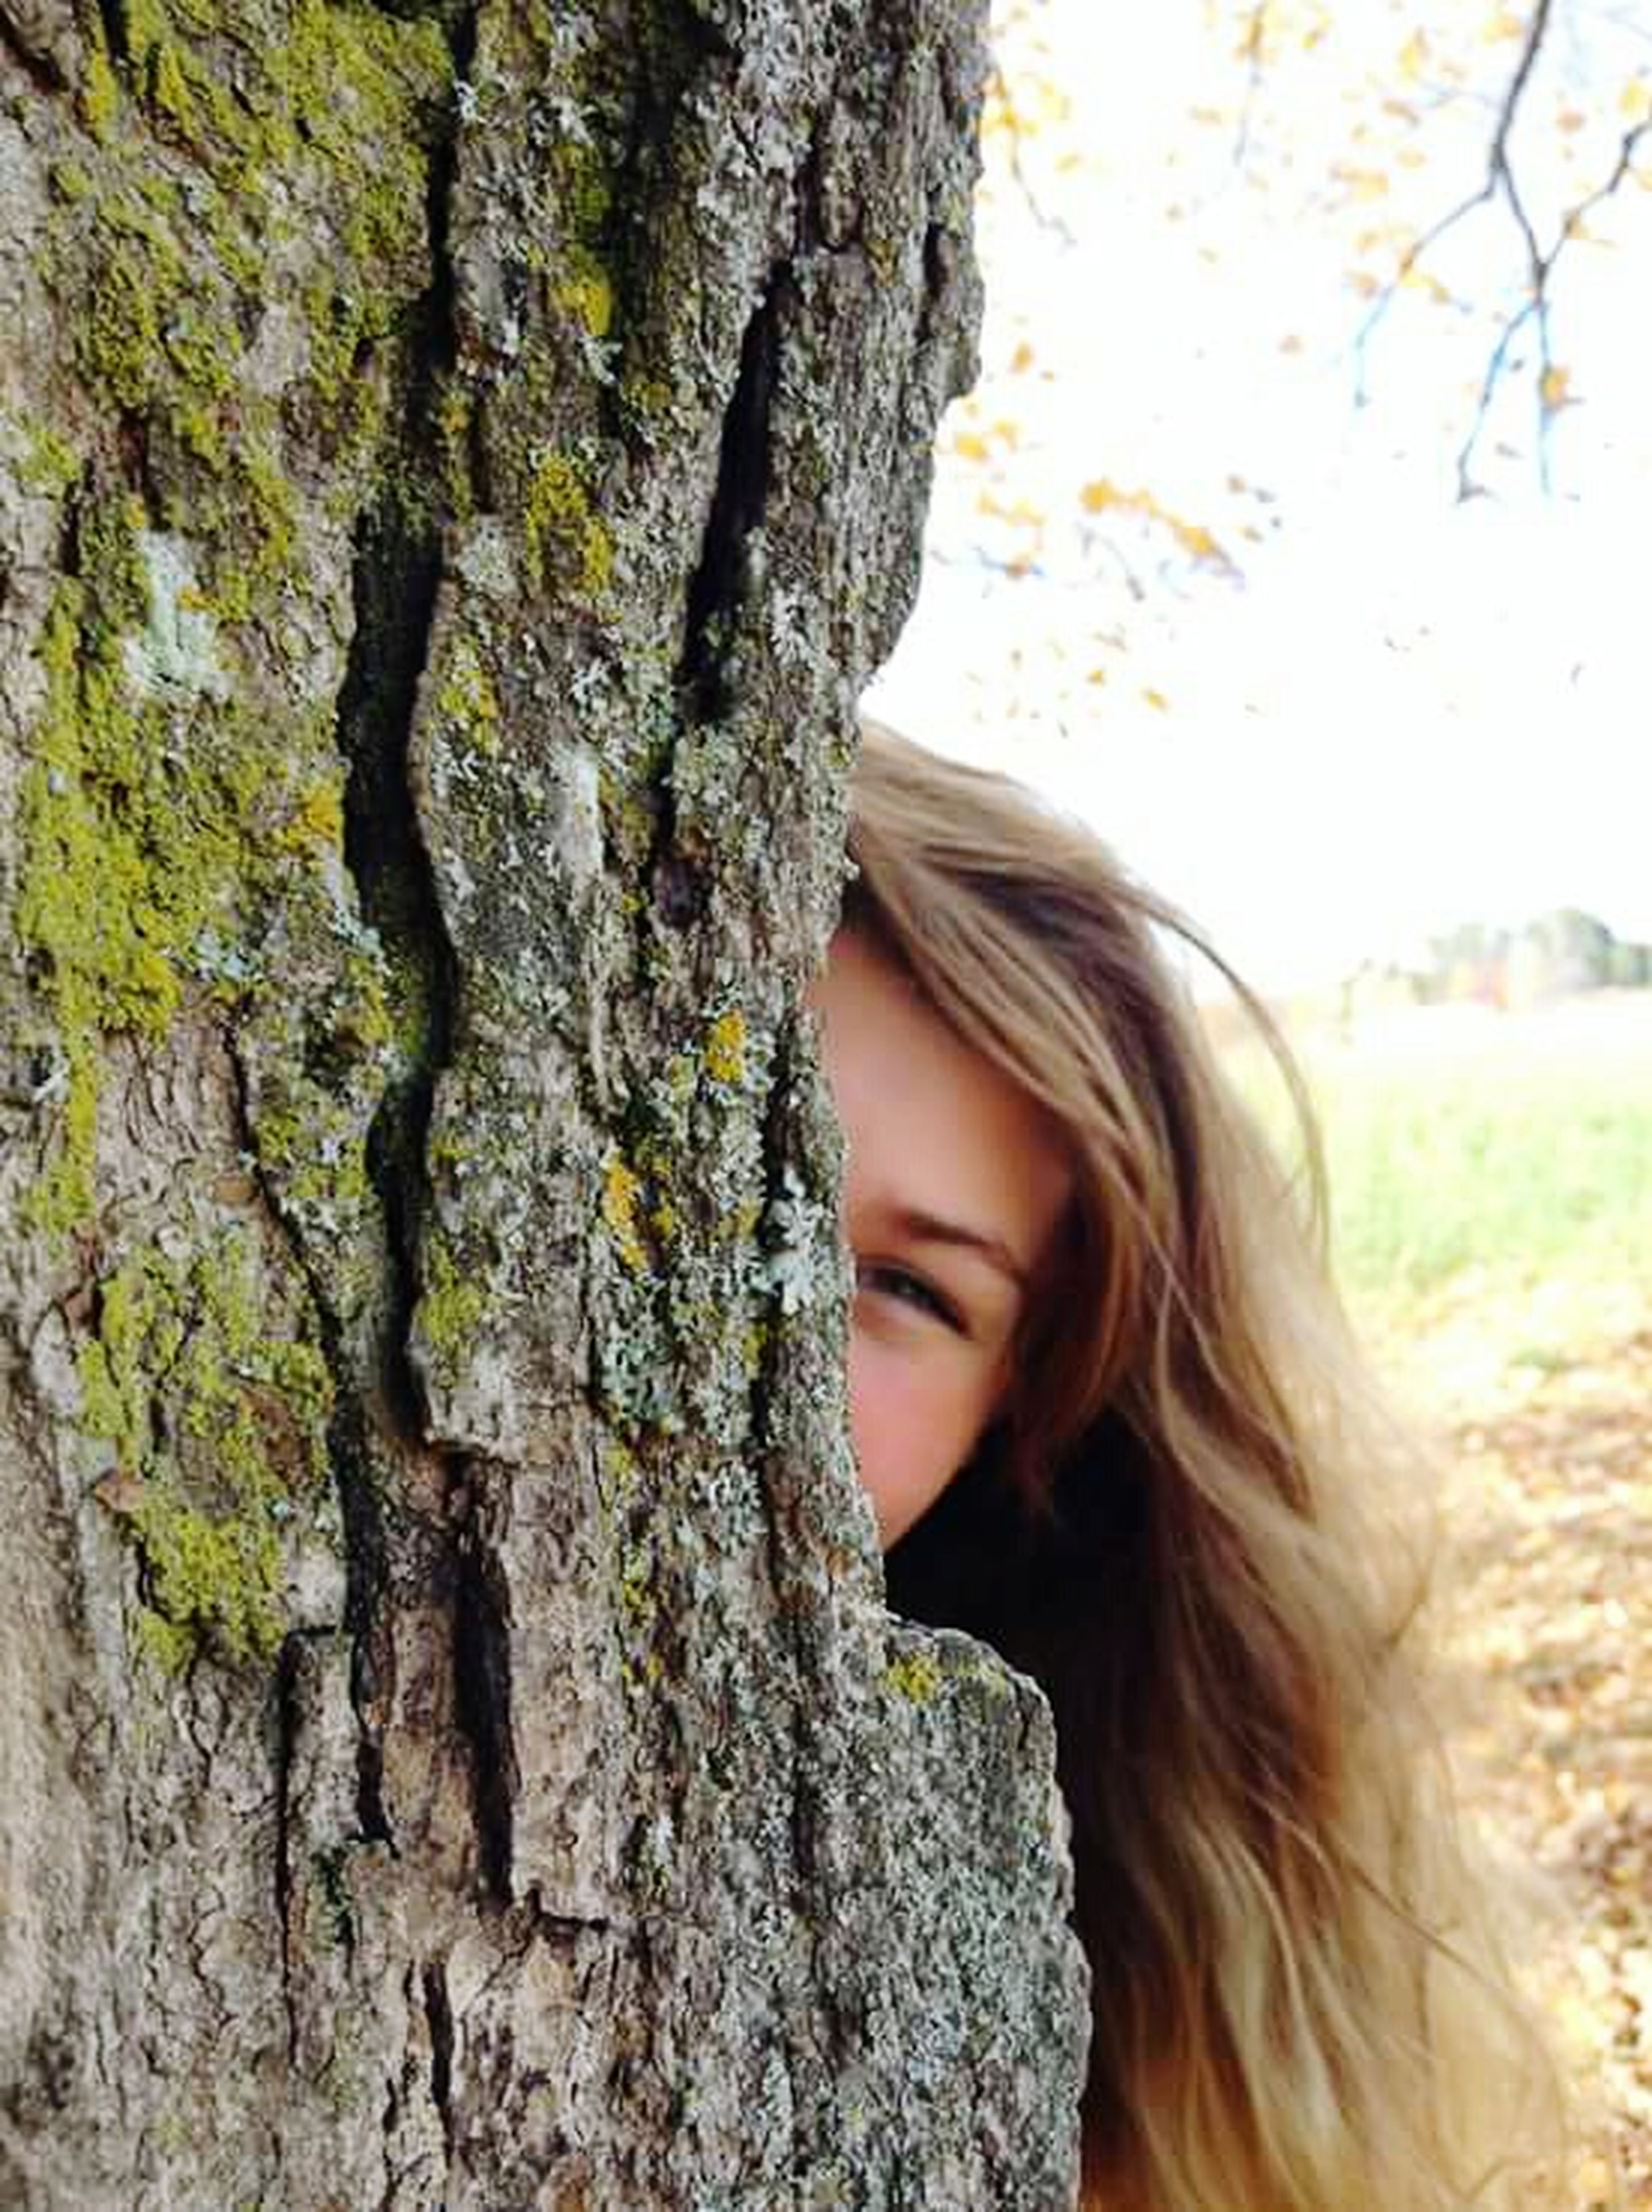 long hair, lifestyles, headshot, portrait, close-up, focus on foreground, leisure activity, beauty, tree trunk, day, outdoors, nature, casual clothing